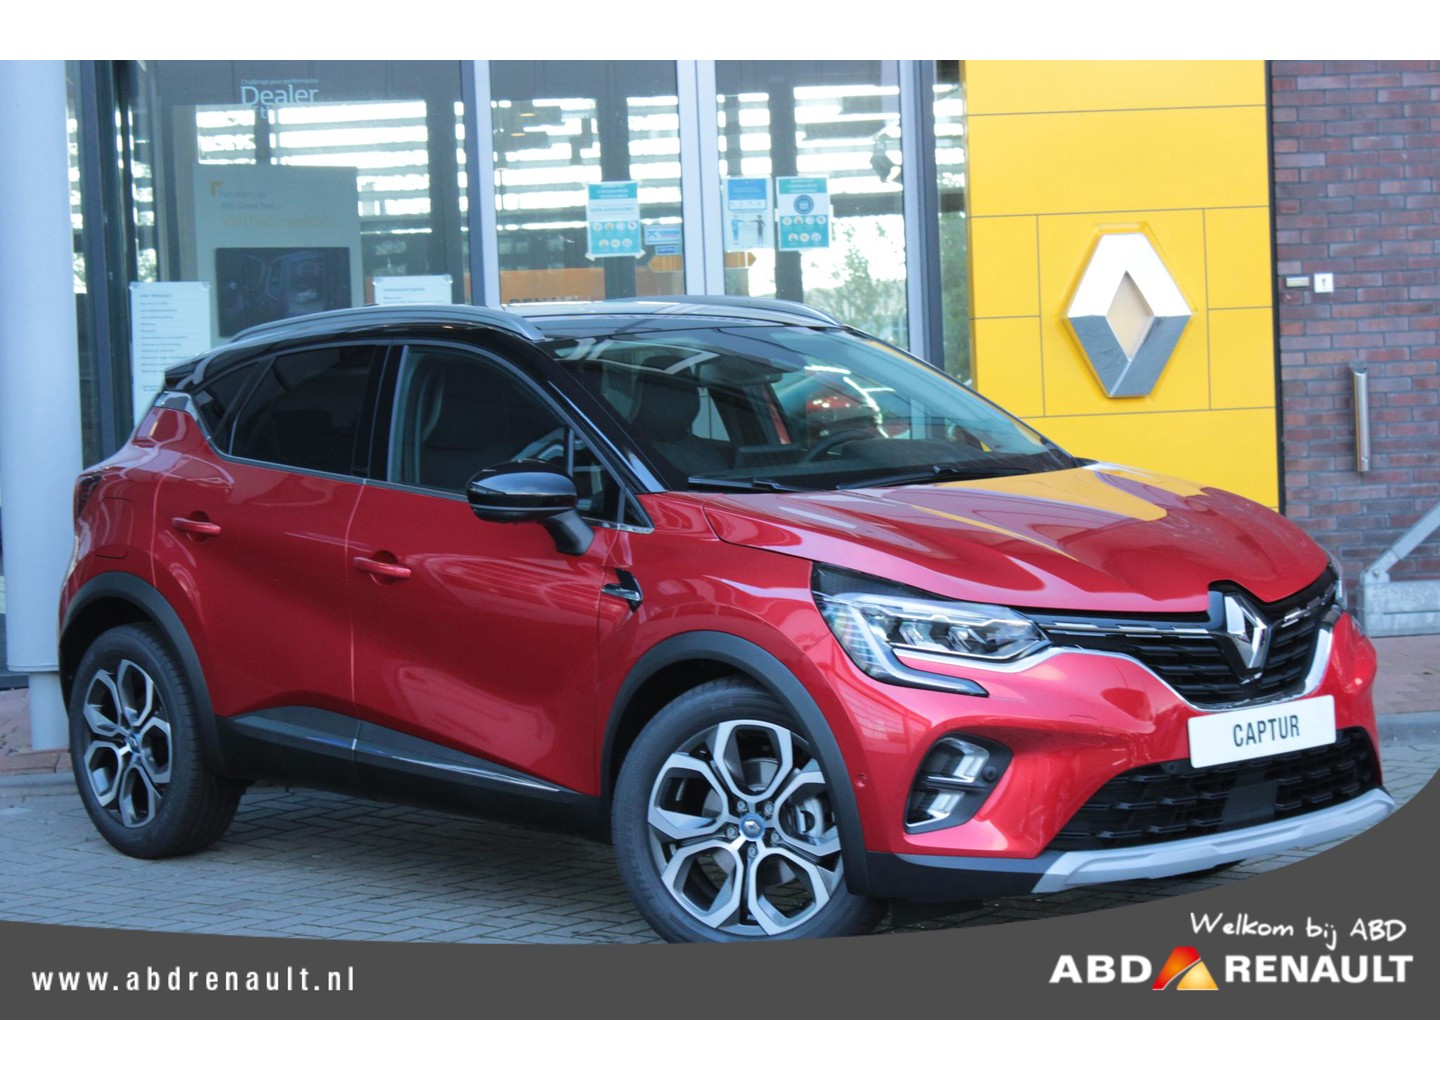 Renault Captur 1.6 plug-in hybrid 160pk edition one + 5 jaar garantie